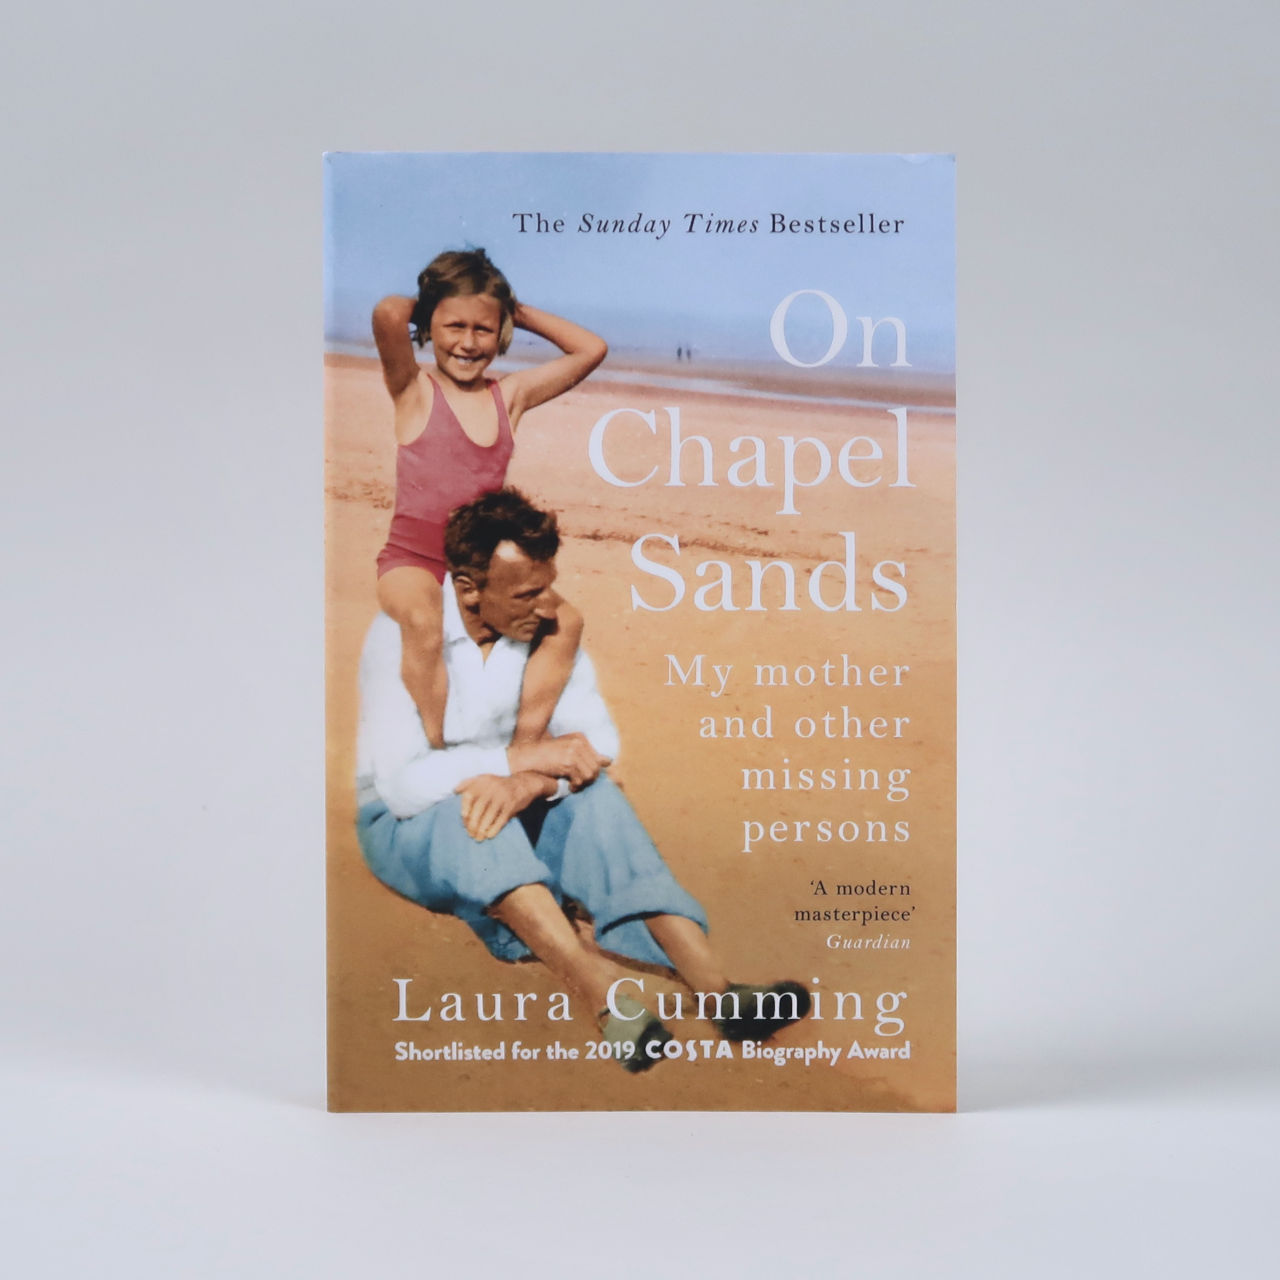 On Chapel Sands - Laura Cuming